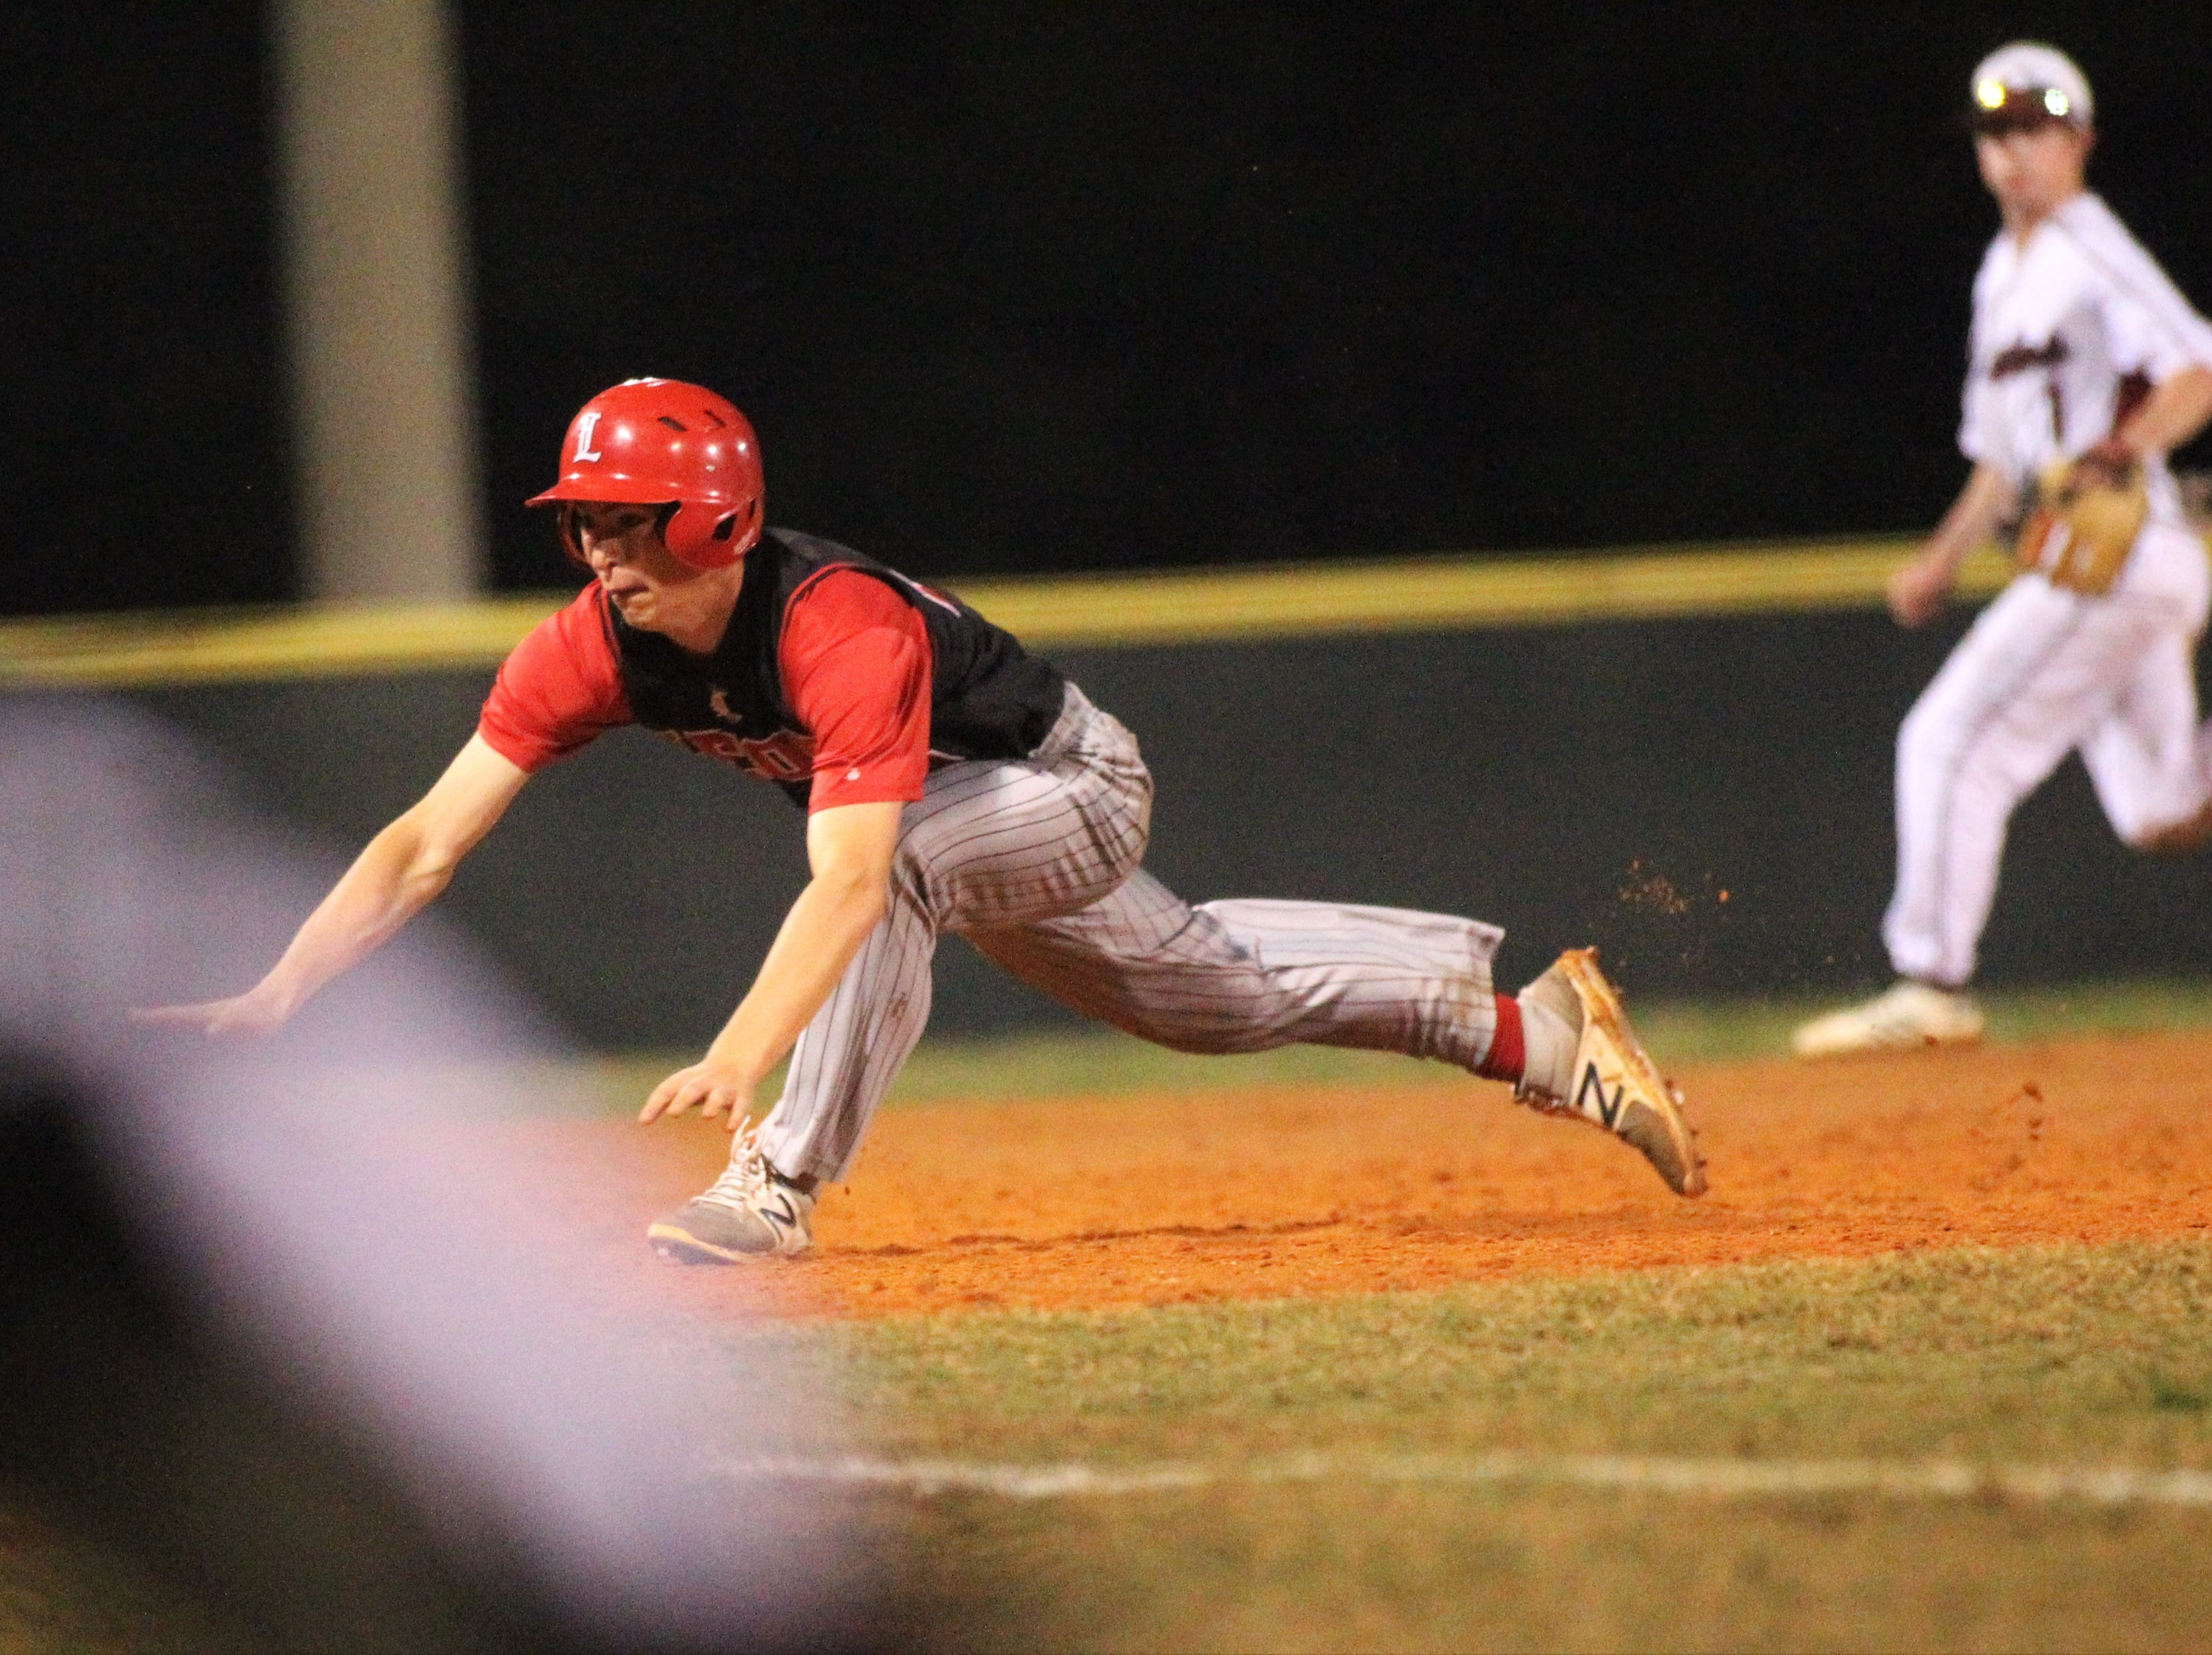 Leon junior Nick Flynt slides into third base on a passed ball as Chiles won an 11-6 home game against Leon on Friday, April 5, 2019, to force a season split. The Lions won 3-0 earlier in the week.